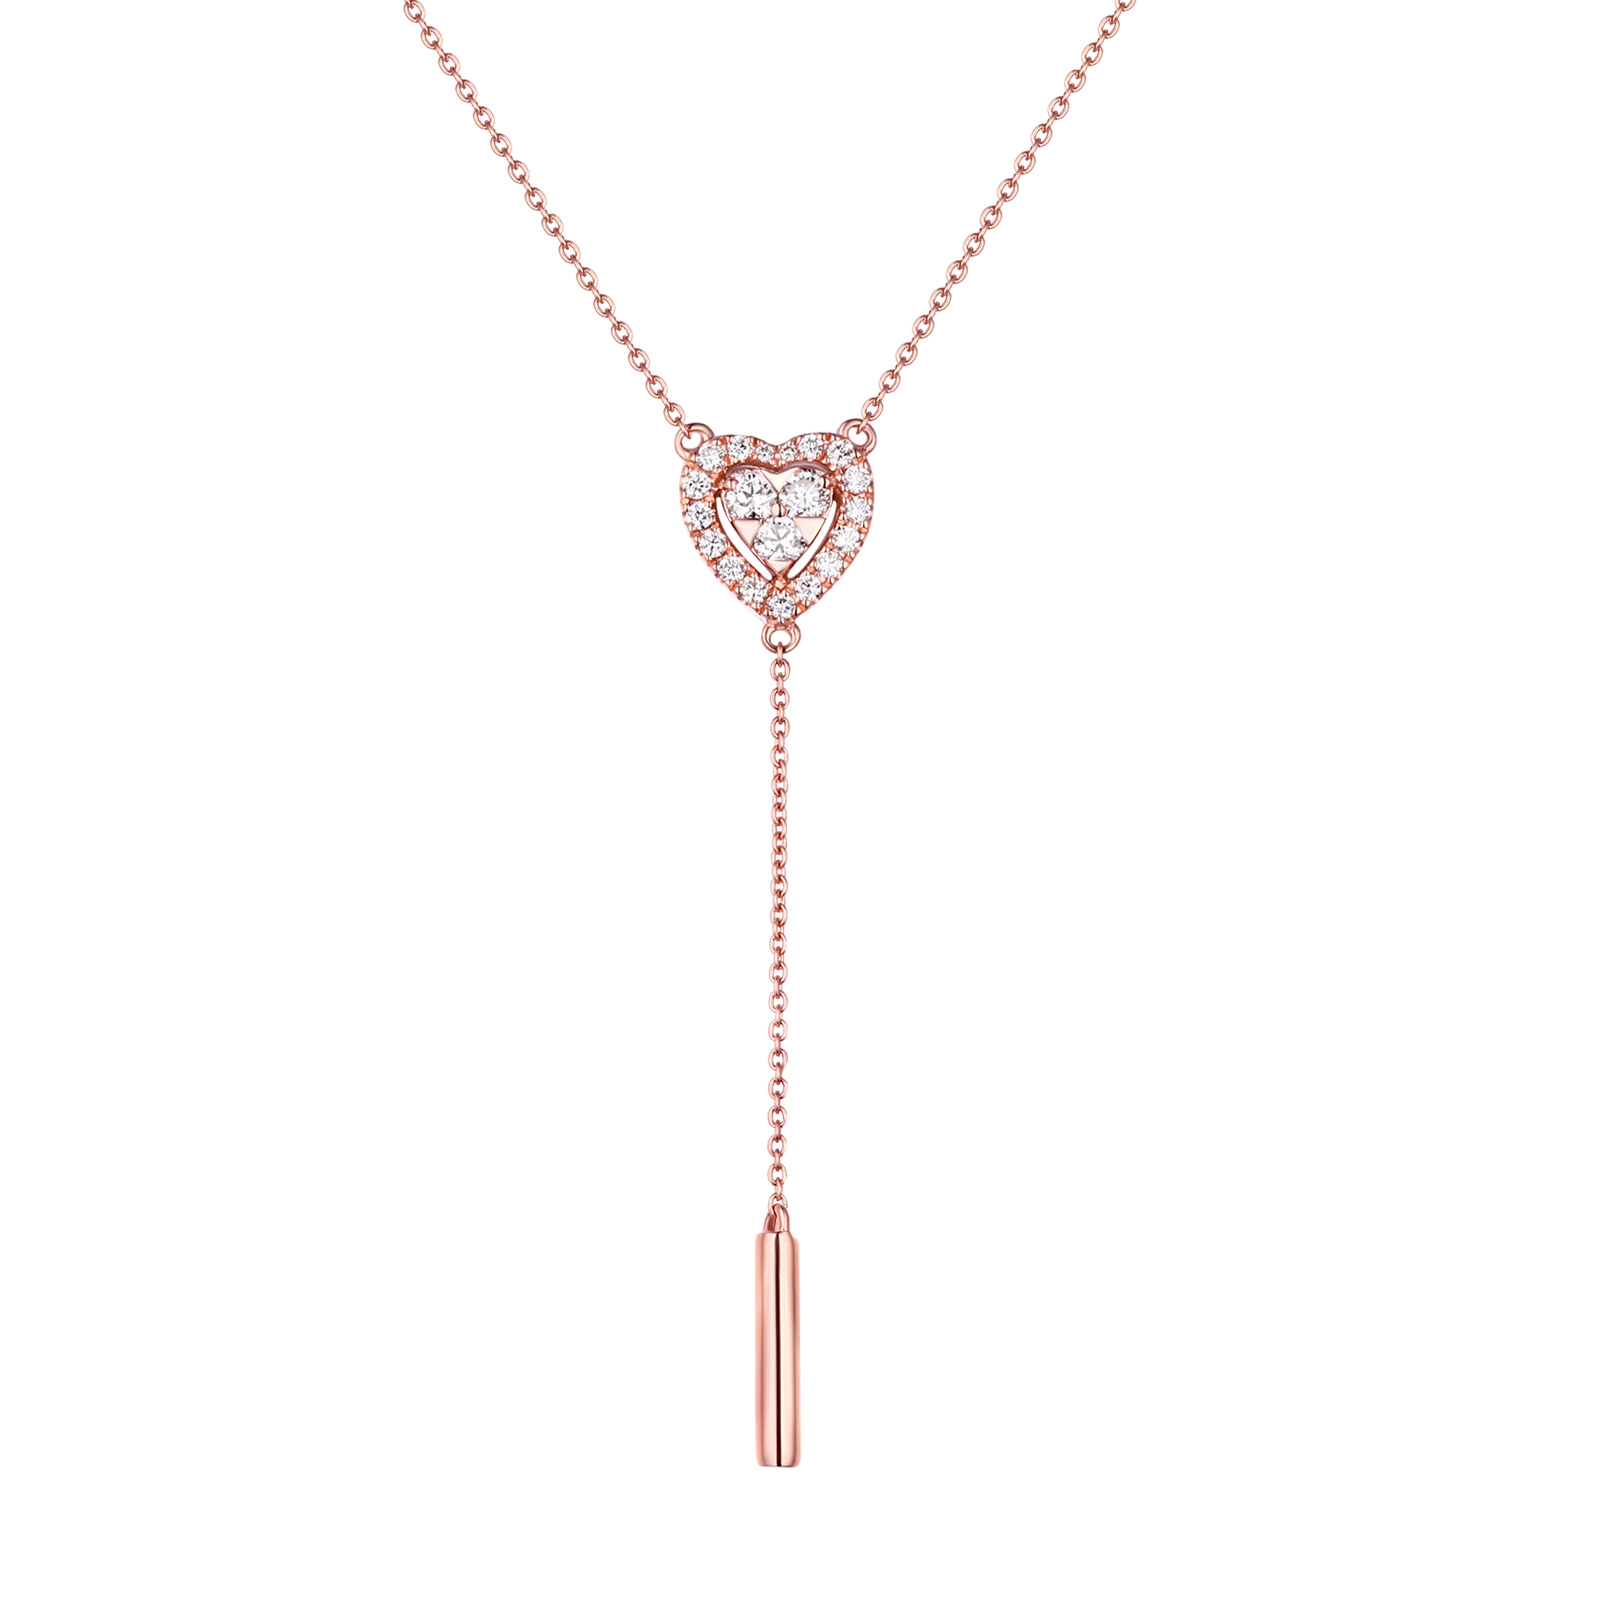 NL25529WHT- 14K Rose Gold Diamond Necklace, 0.26 TCW